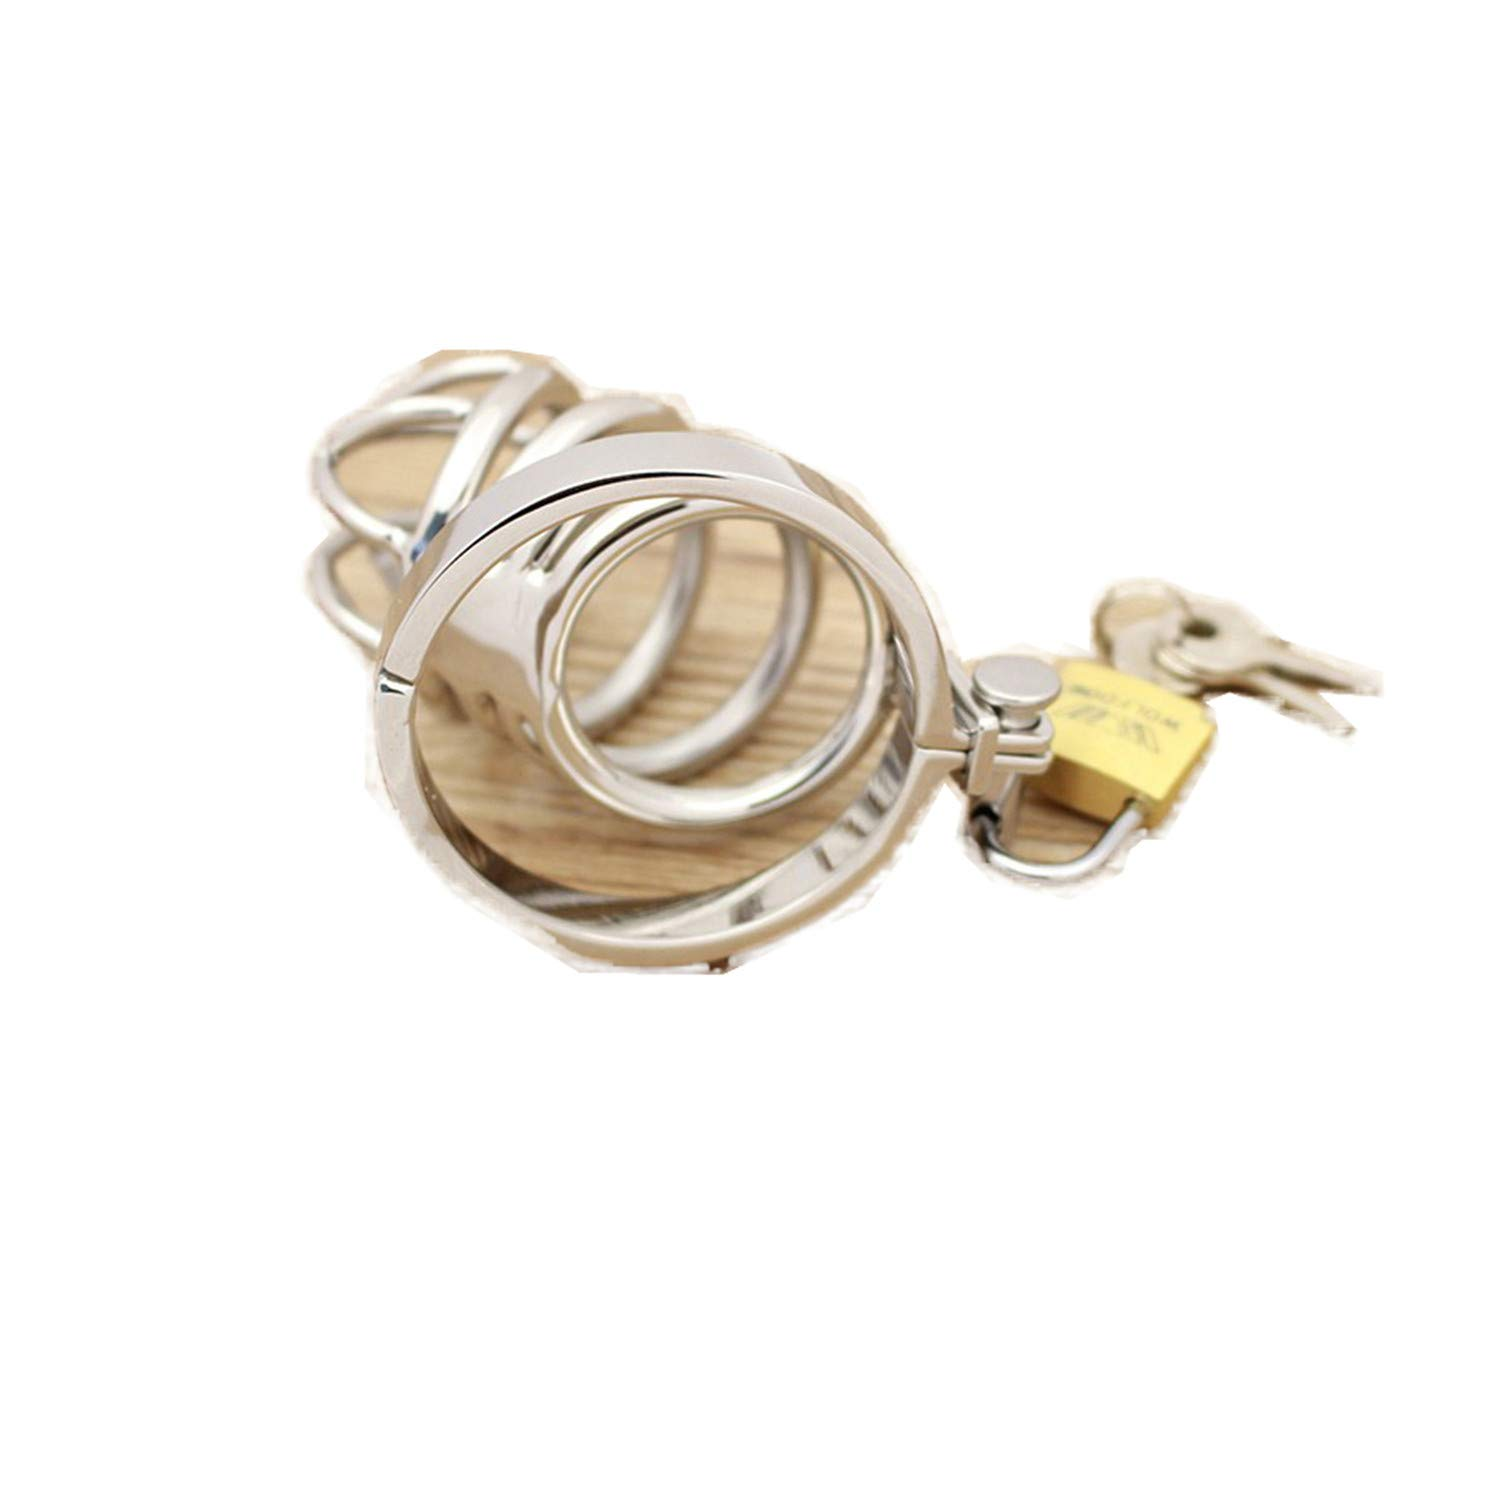 sensitives Male Chastity Device Stainless Steel Cock Short Cage Men's Virginity Lock, Small Chastity Belt Adult Game Sex Toys 38mm by sensitives (Image #6)